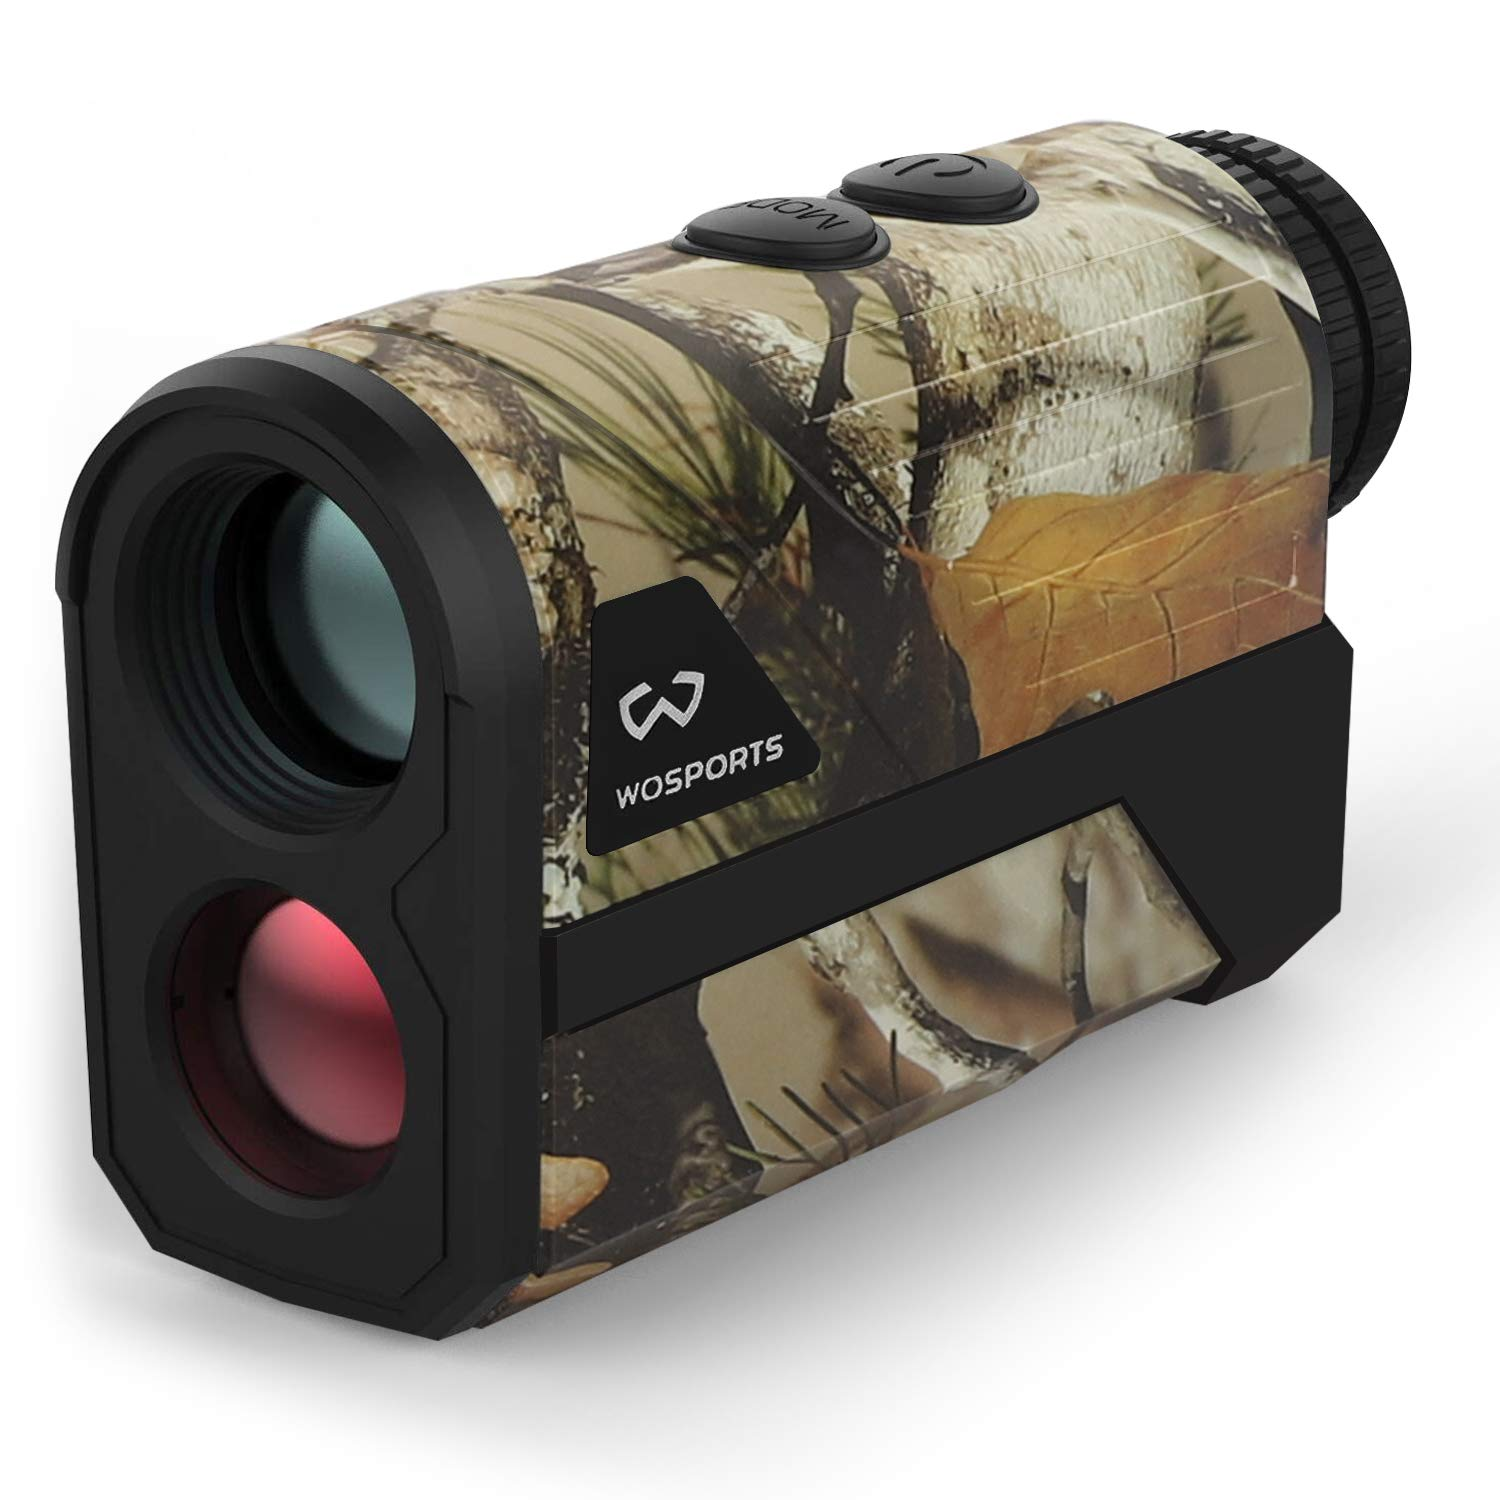 WOSPORTS 1000 Yards Hunting Rangefinder,Archery Rangefinder - Laser Range Finder for Hunting Golf with Speed, Scan and Normal Measurements (Yards Hunting-H100GM) by WOSPORTS